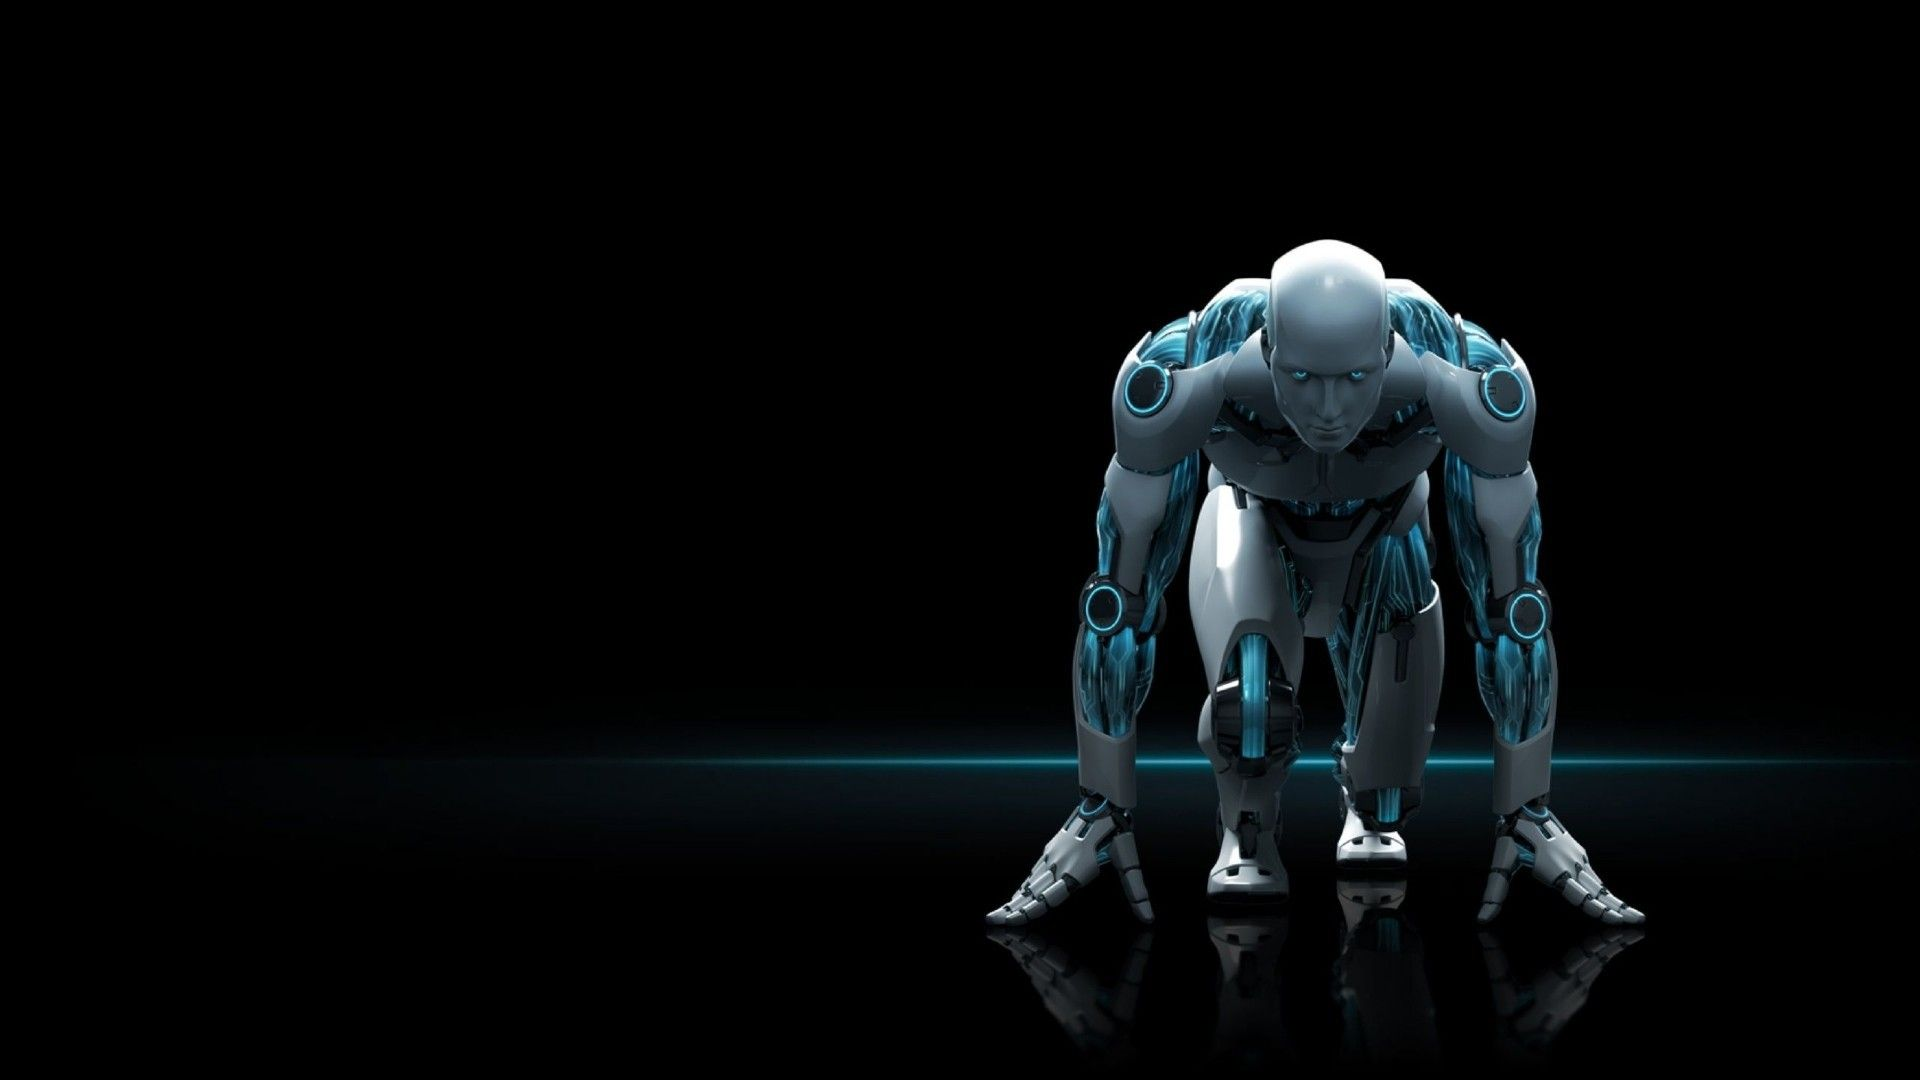 1920x1080 Fitness for robots wallpapers and images - wallpapers ...